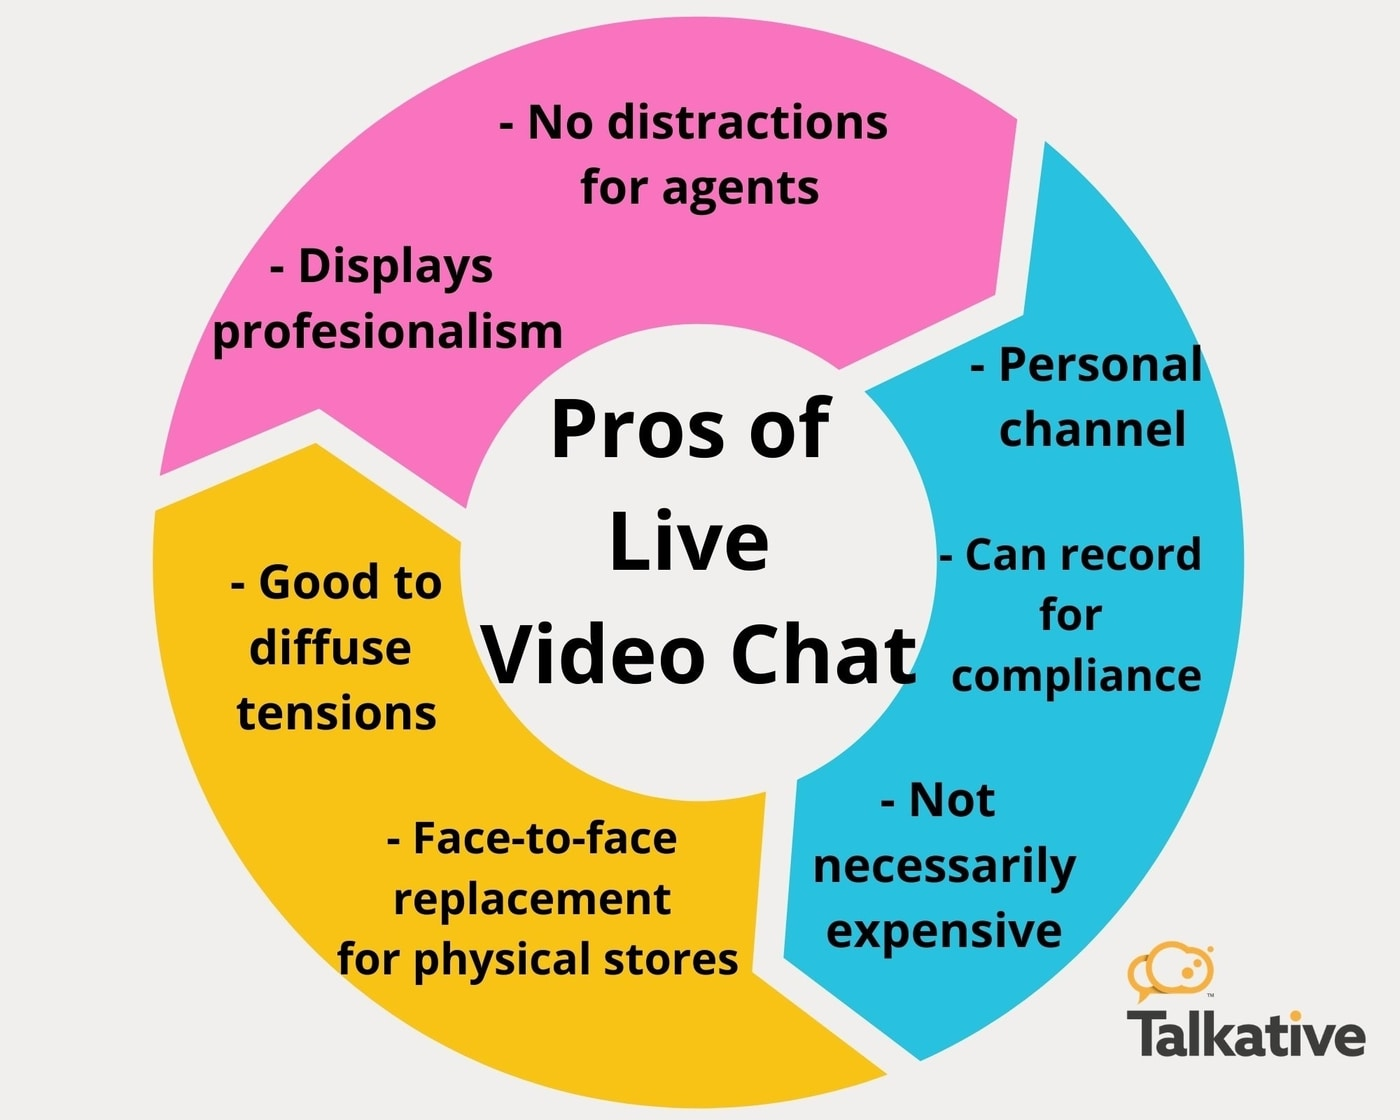 Pros of Live video chat